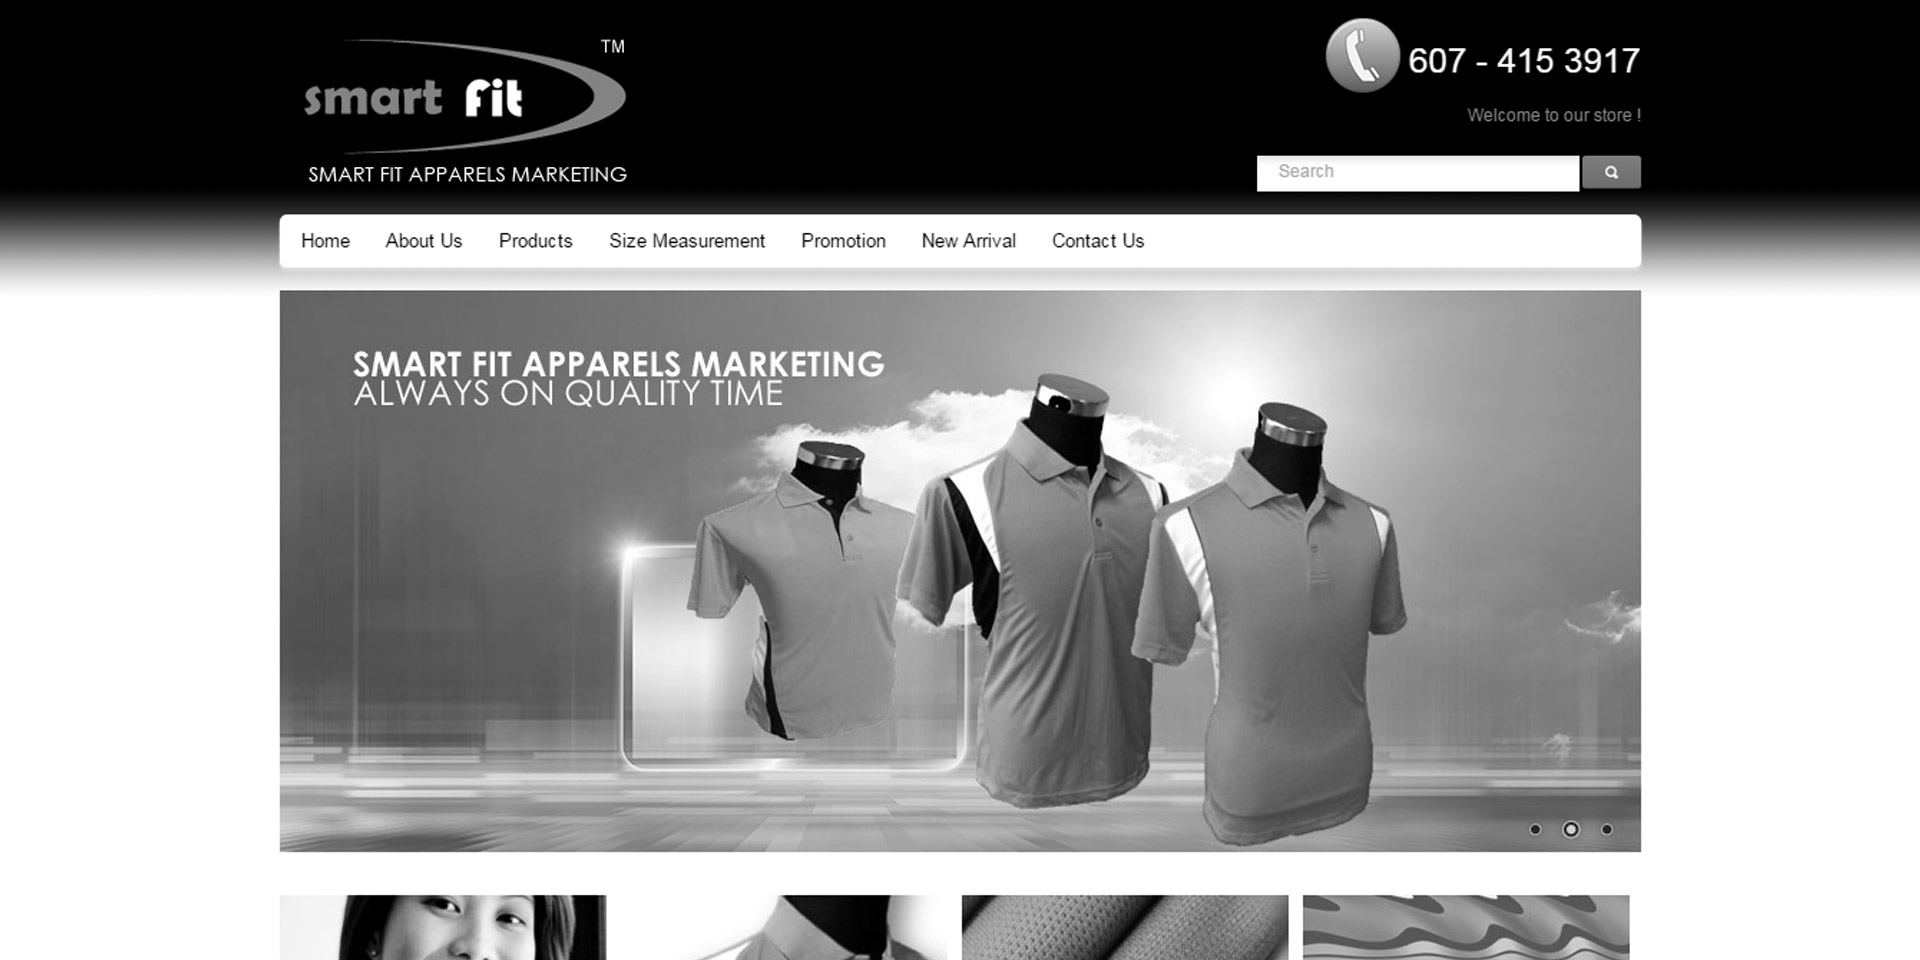 Smart Fit Apparels Marketing